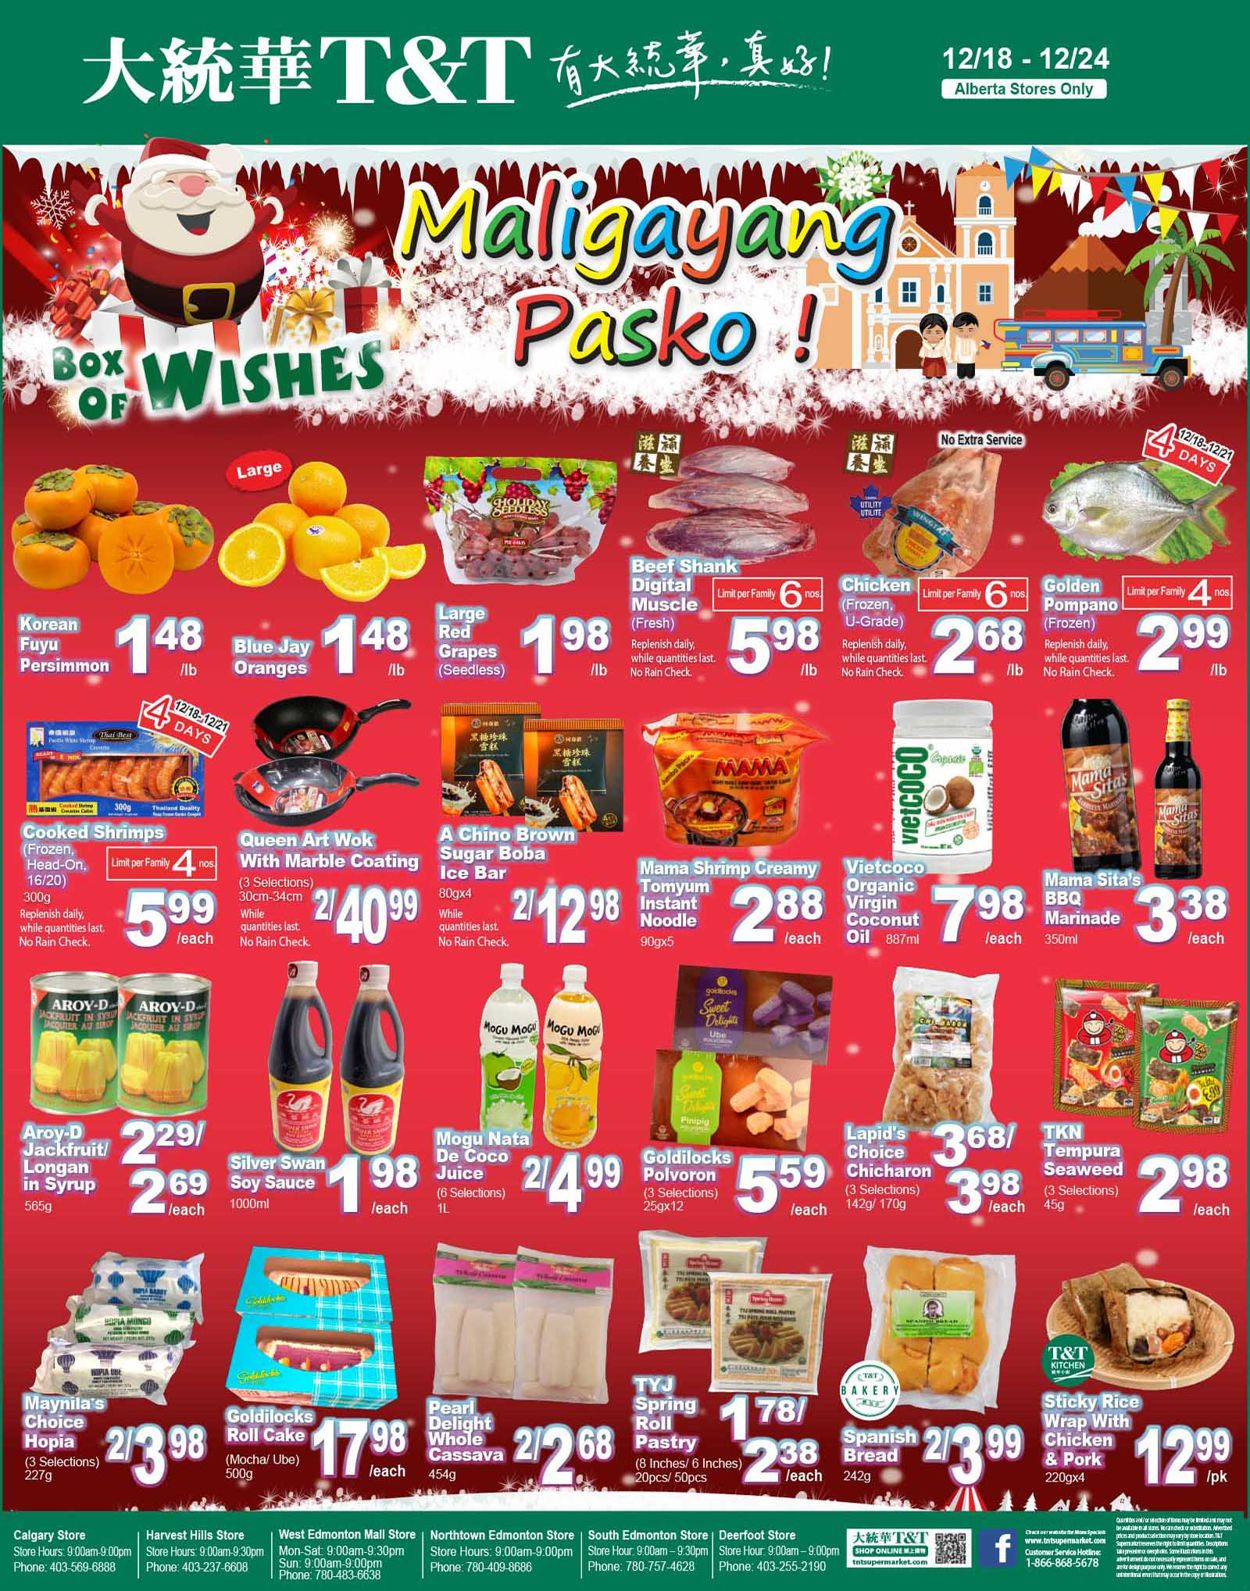 T&T Supermarket Christmas 2020 - Alberta Flyer - 12/18-12/24/2020 (Page 3)